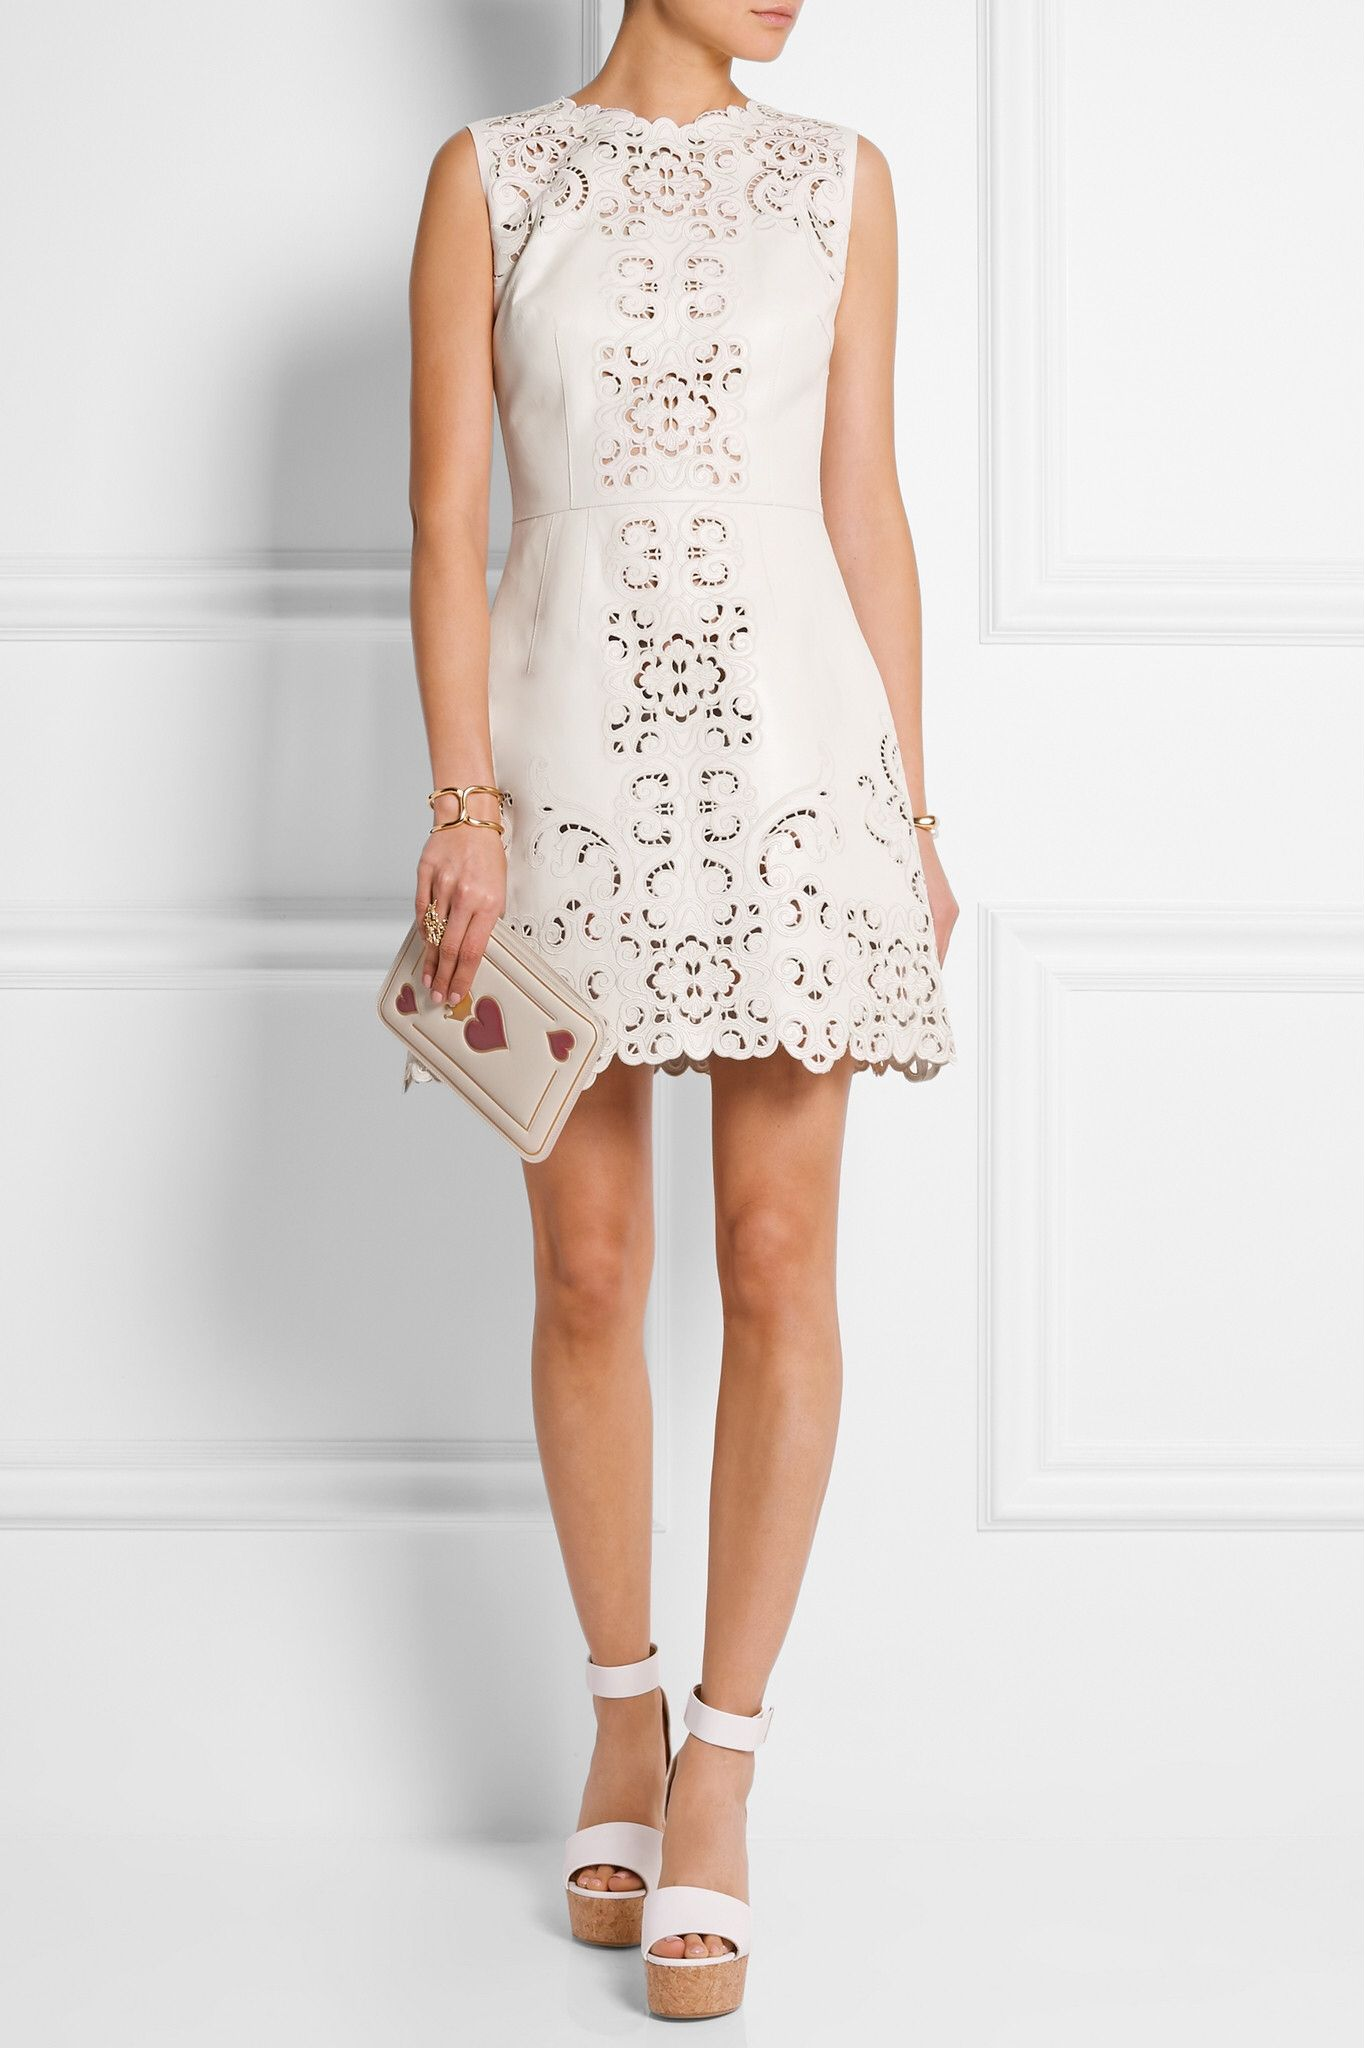 Mini white wedding dress  Pin by Layo  on NetaPorter  Pinterest  Leather mini dress